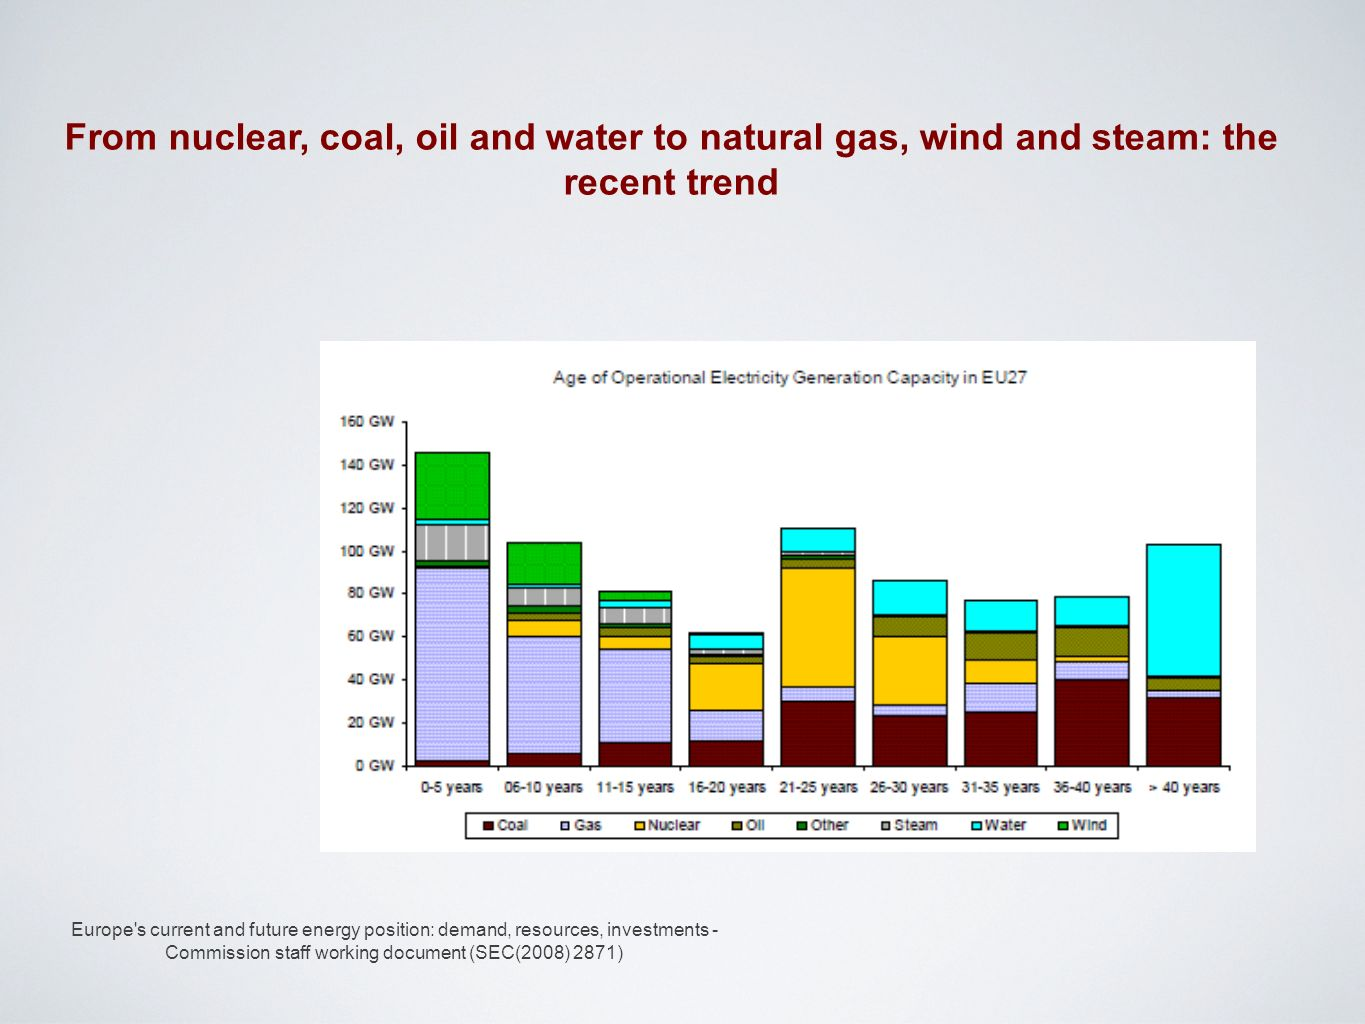 From nuclear, coal, oil and water to natural gas, wind and steam: the recent trend